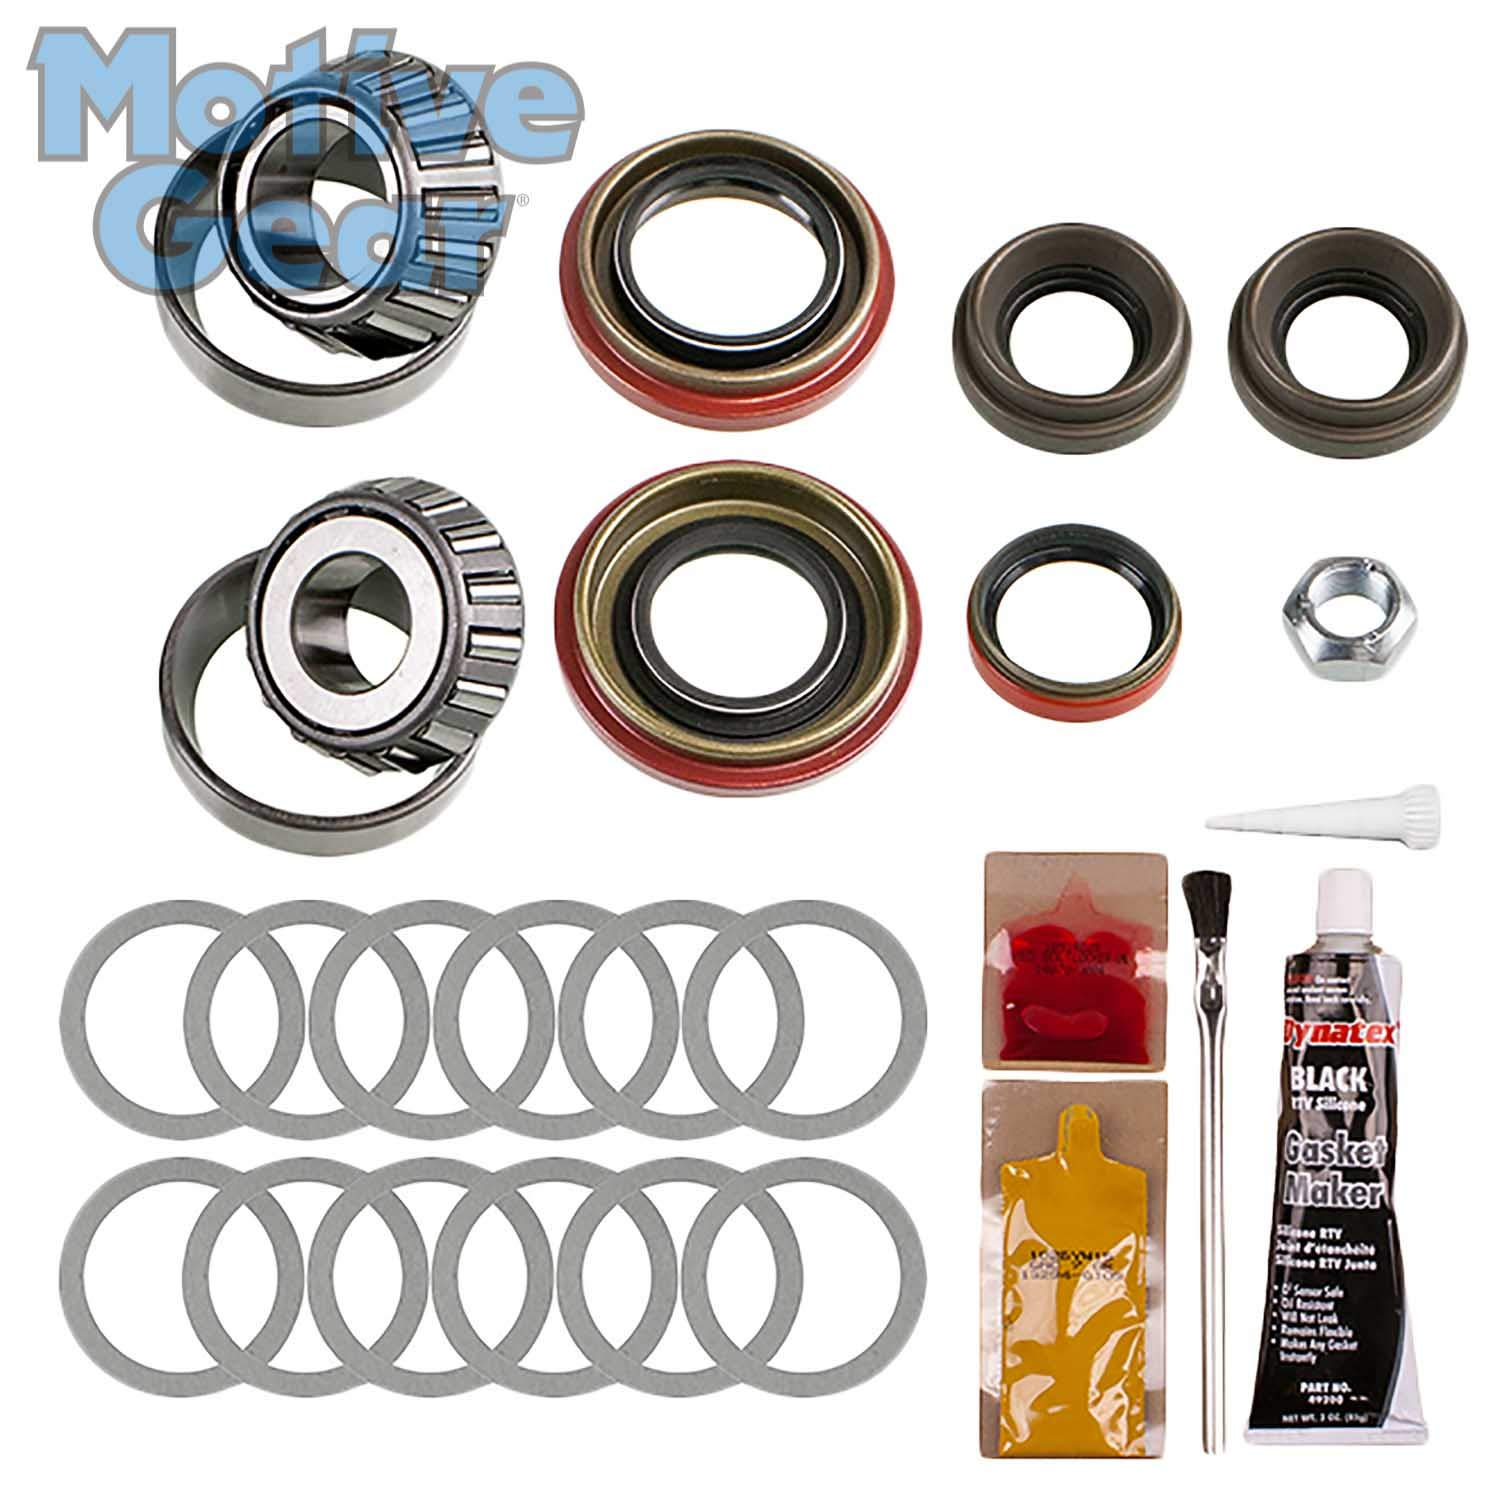 Motive Gear R30RTPK Light Duty Timken Bearing Kit, PBK DANA 30 Ford and JEEP YJ/X